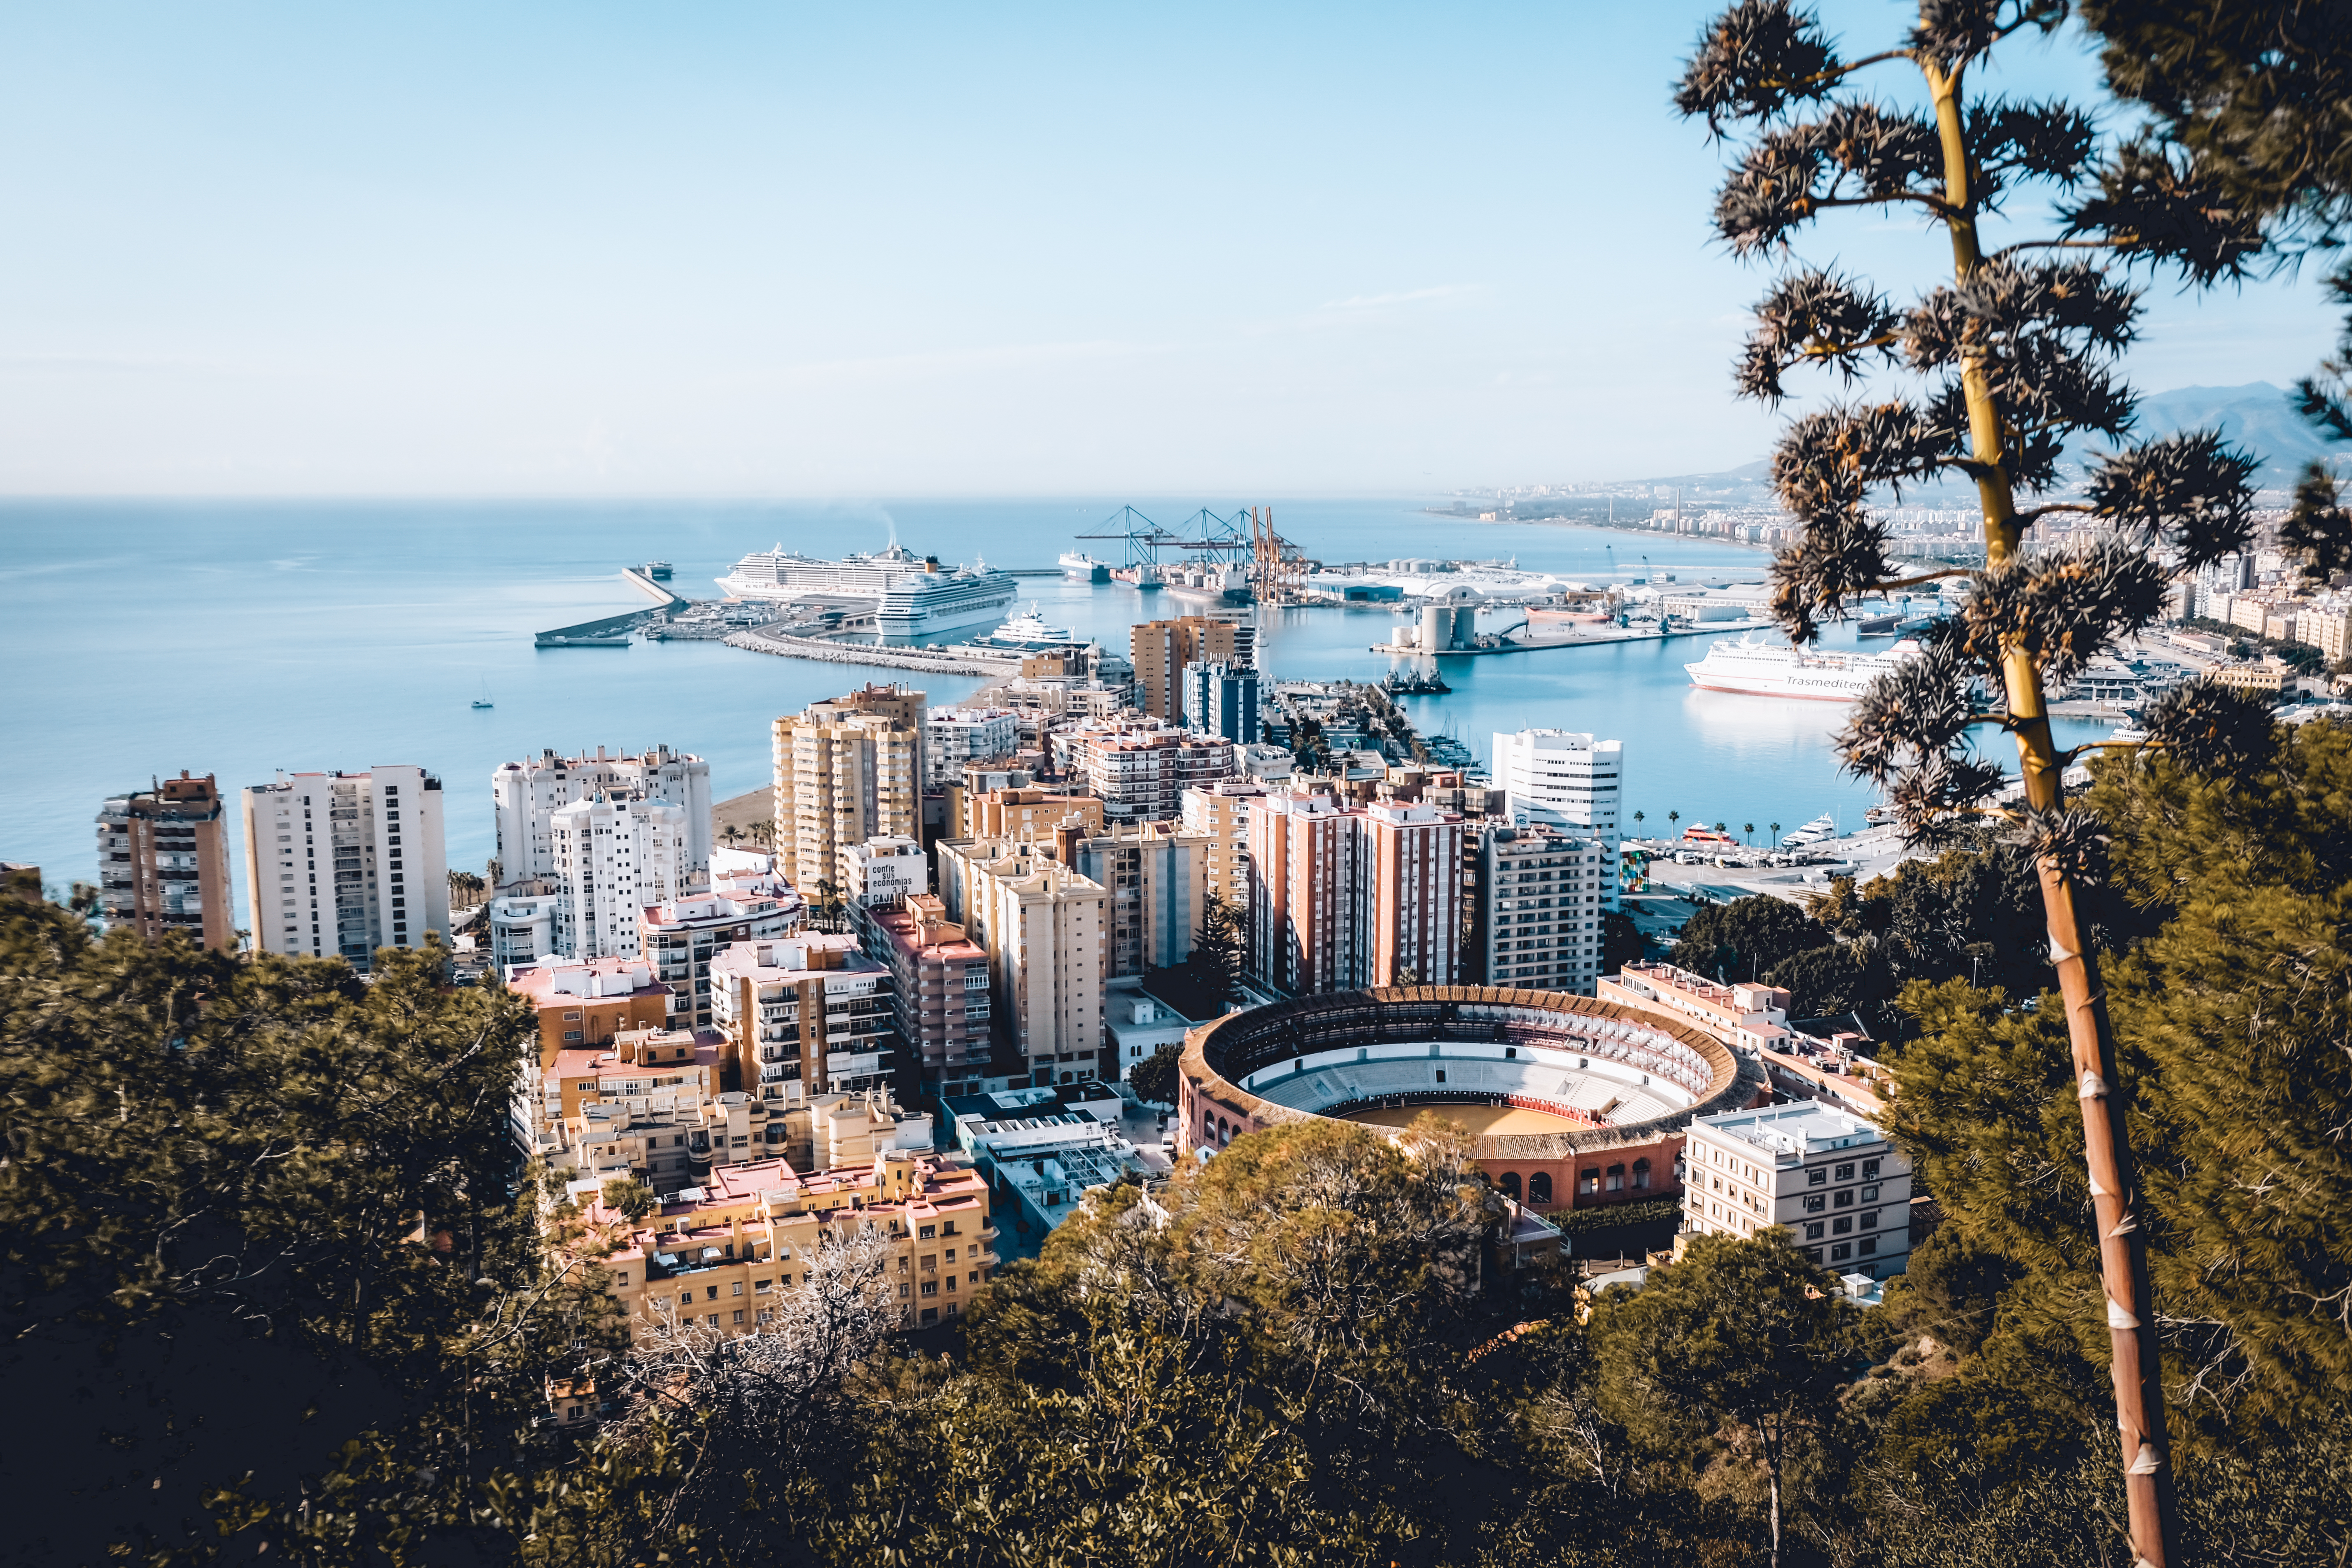 Breathtaking city view on a bullring an port in Malaga.